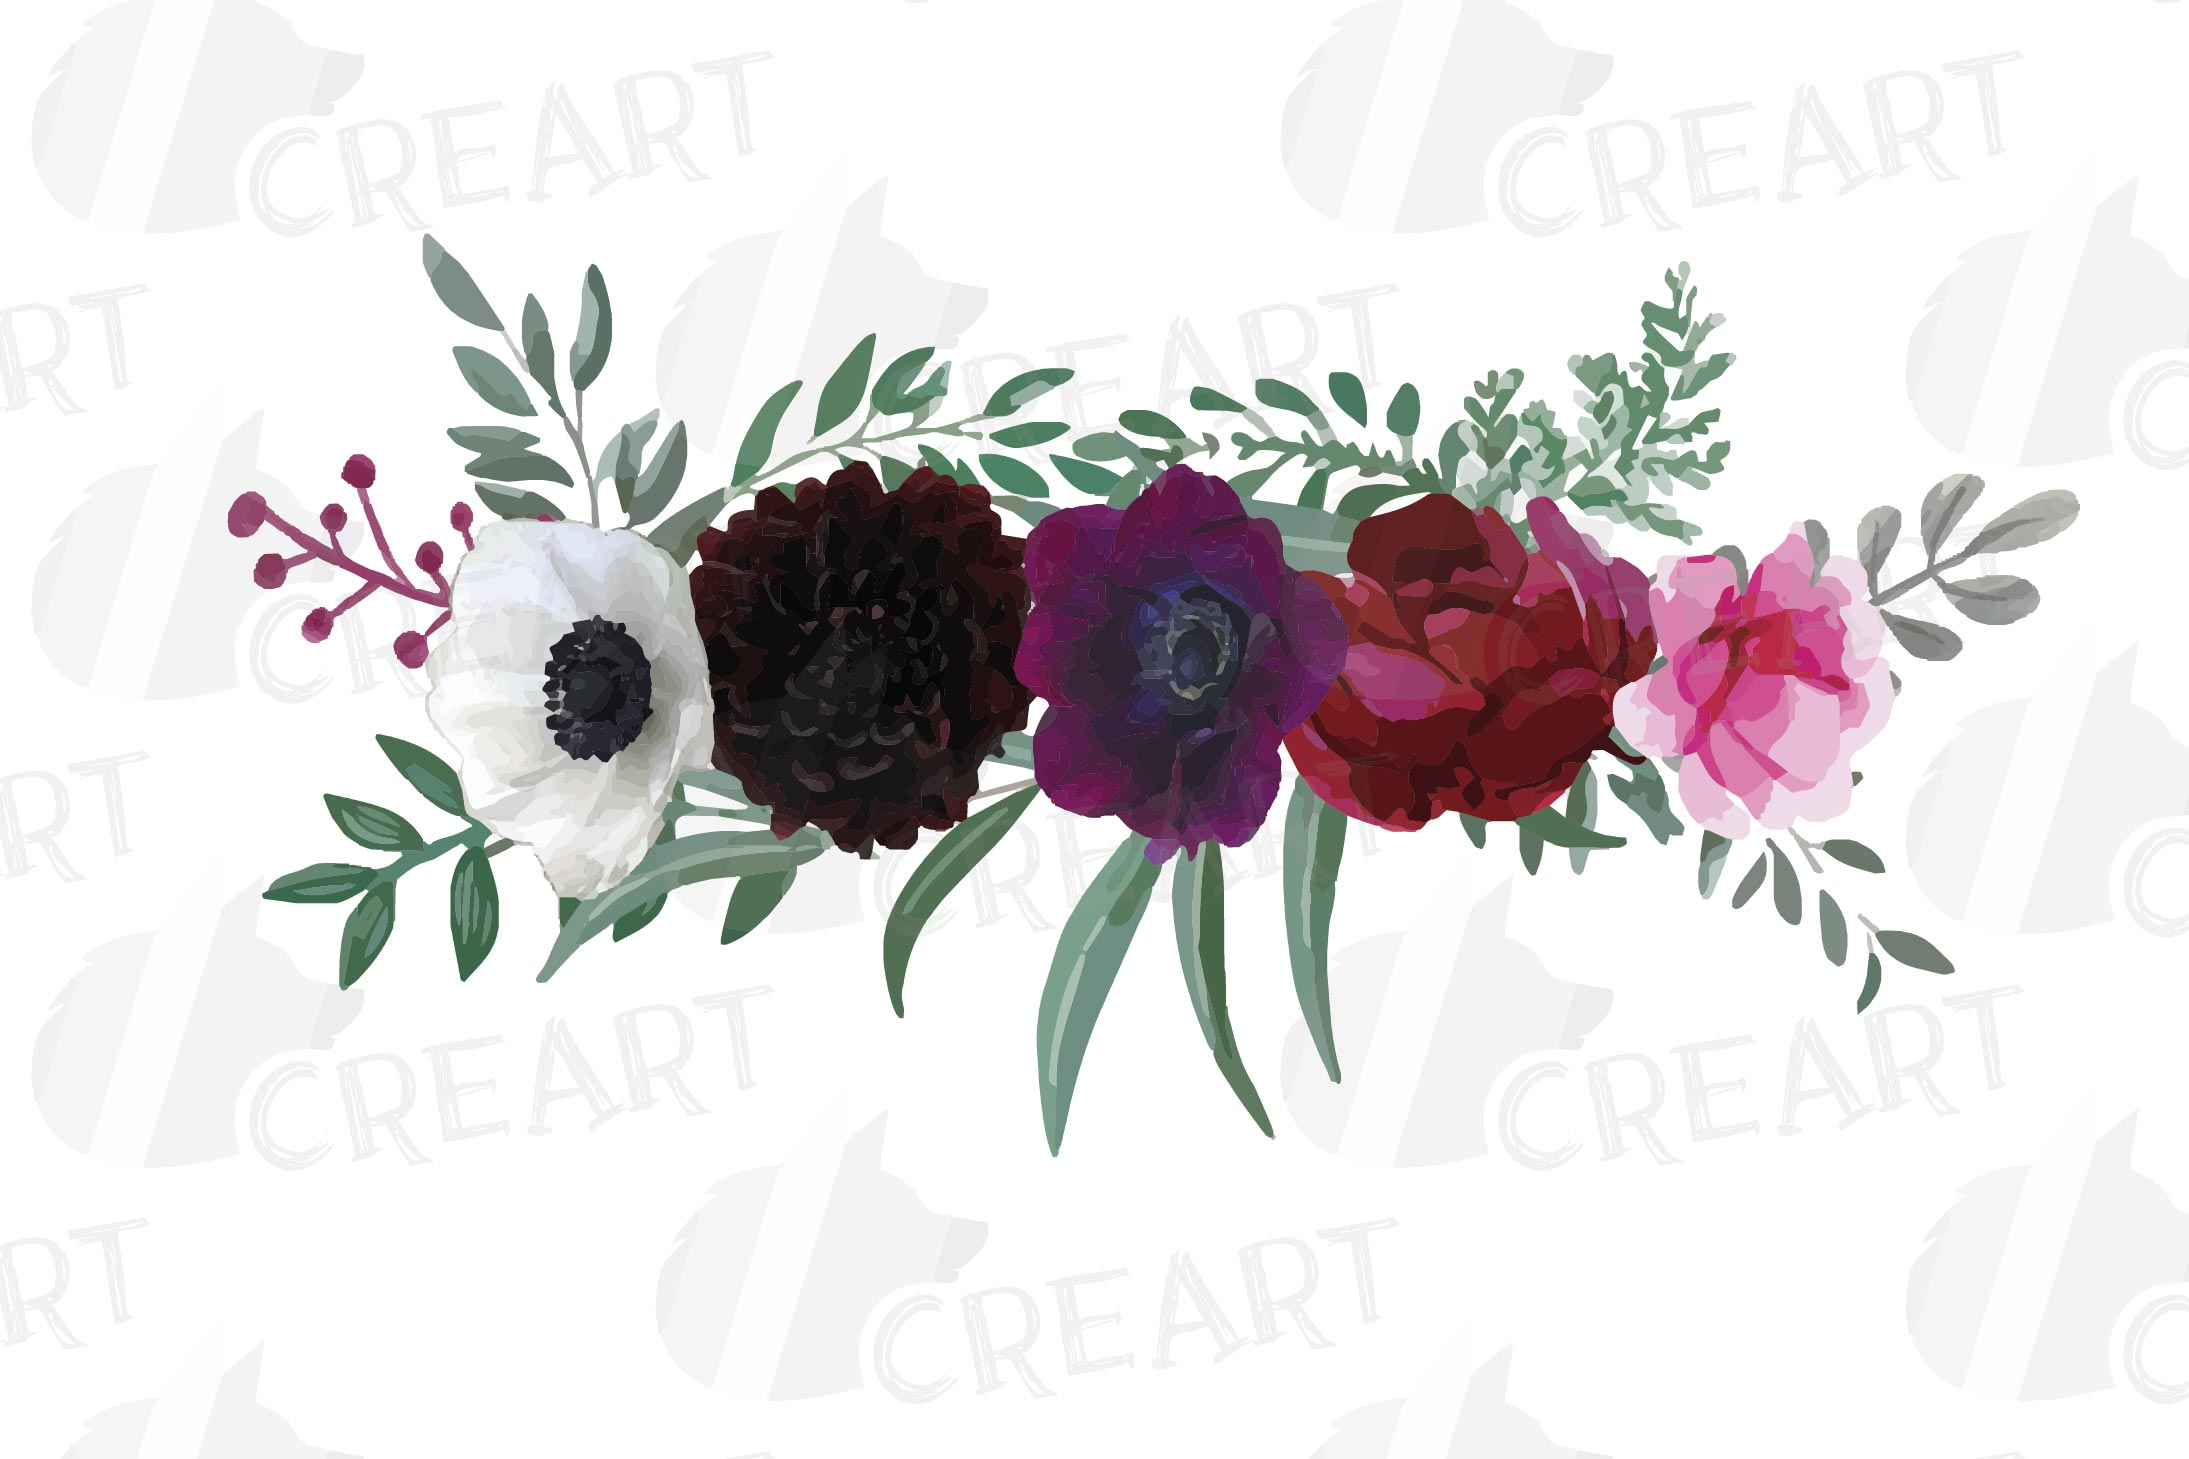 Watercolor elegant floral bouquets 2, rose, anemone decor example image 13